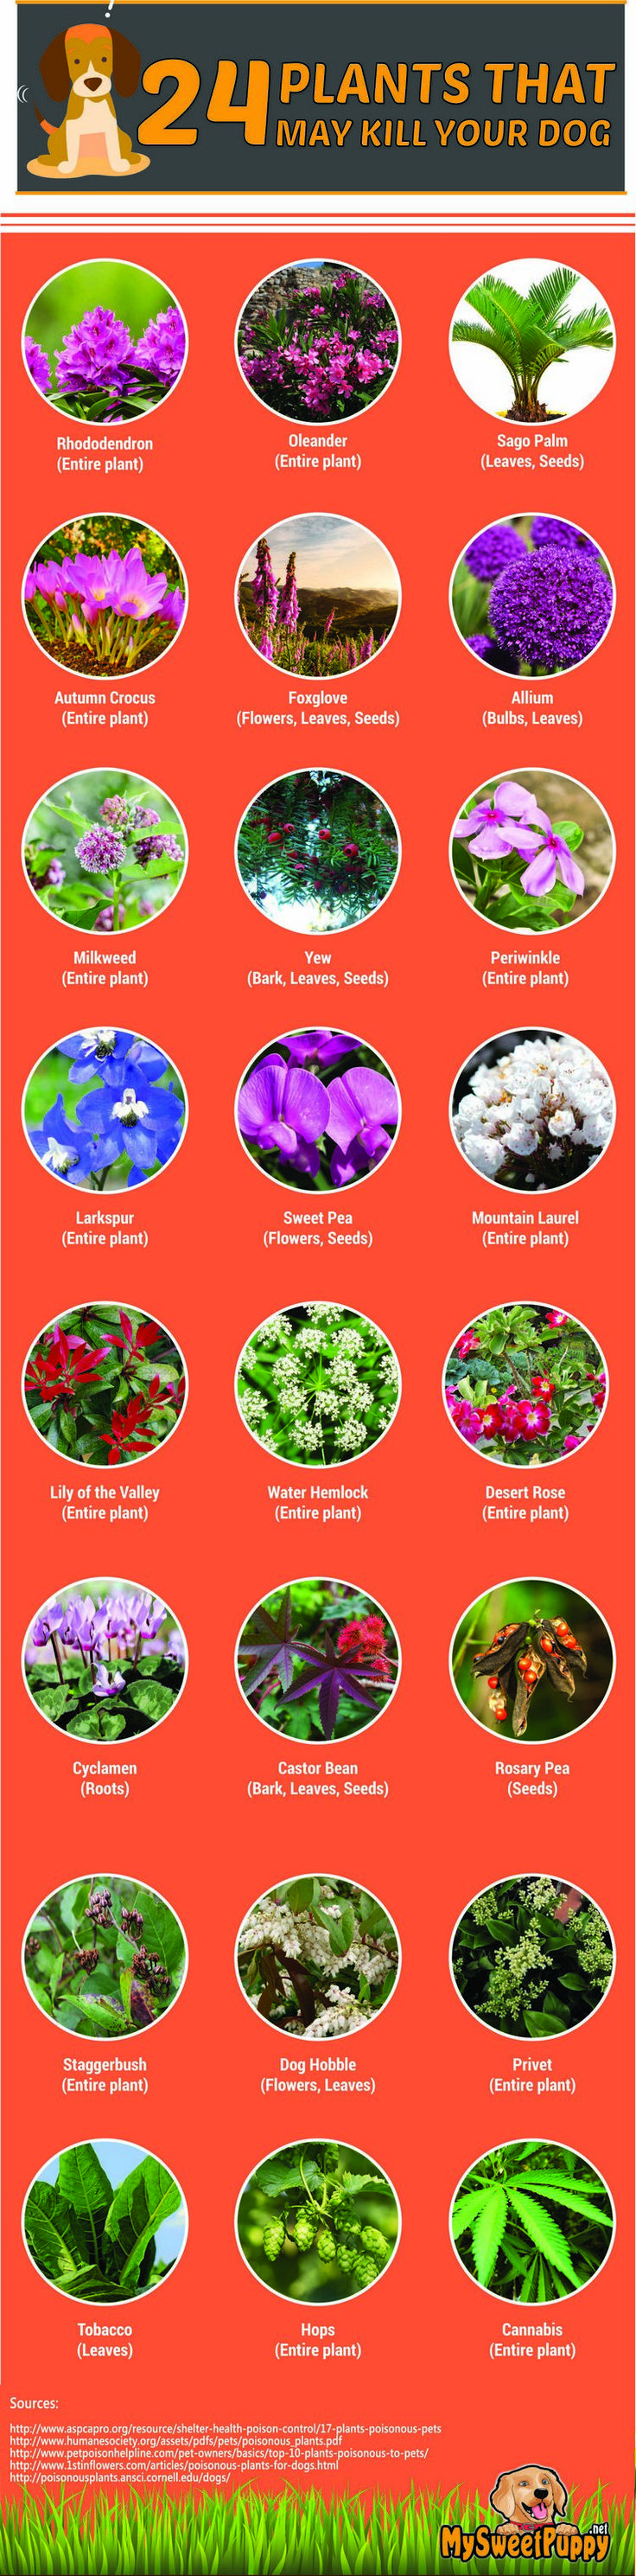 Please watch your furry friends around these plants, they could be seriously hurt or worse!